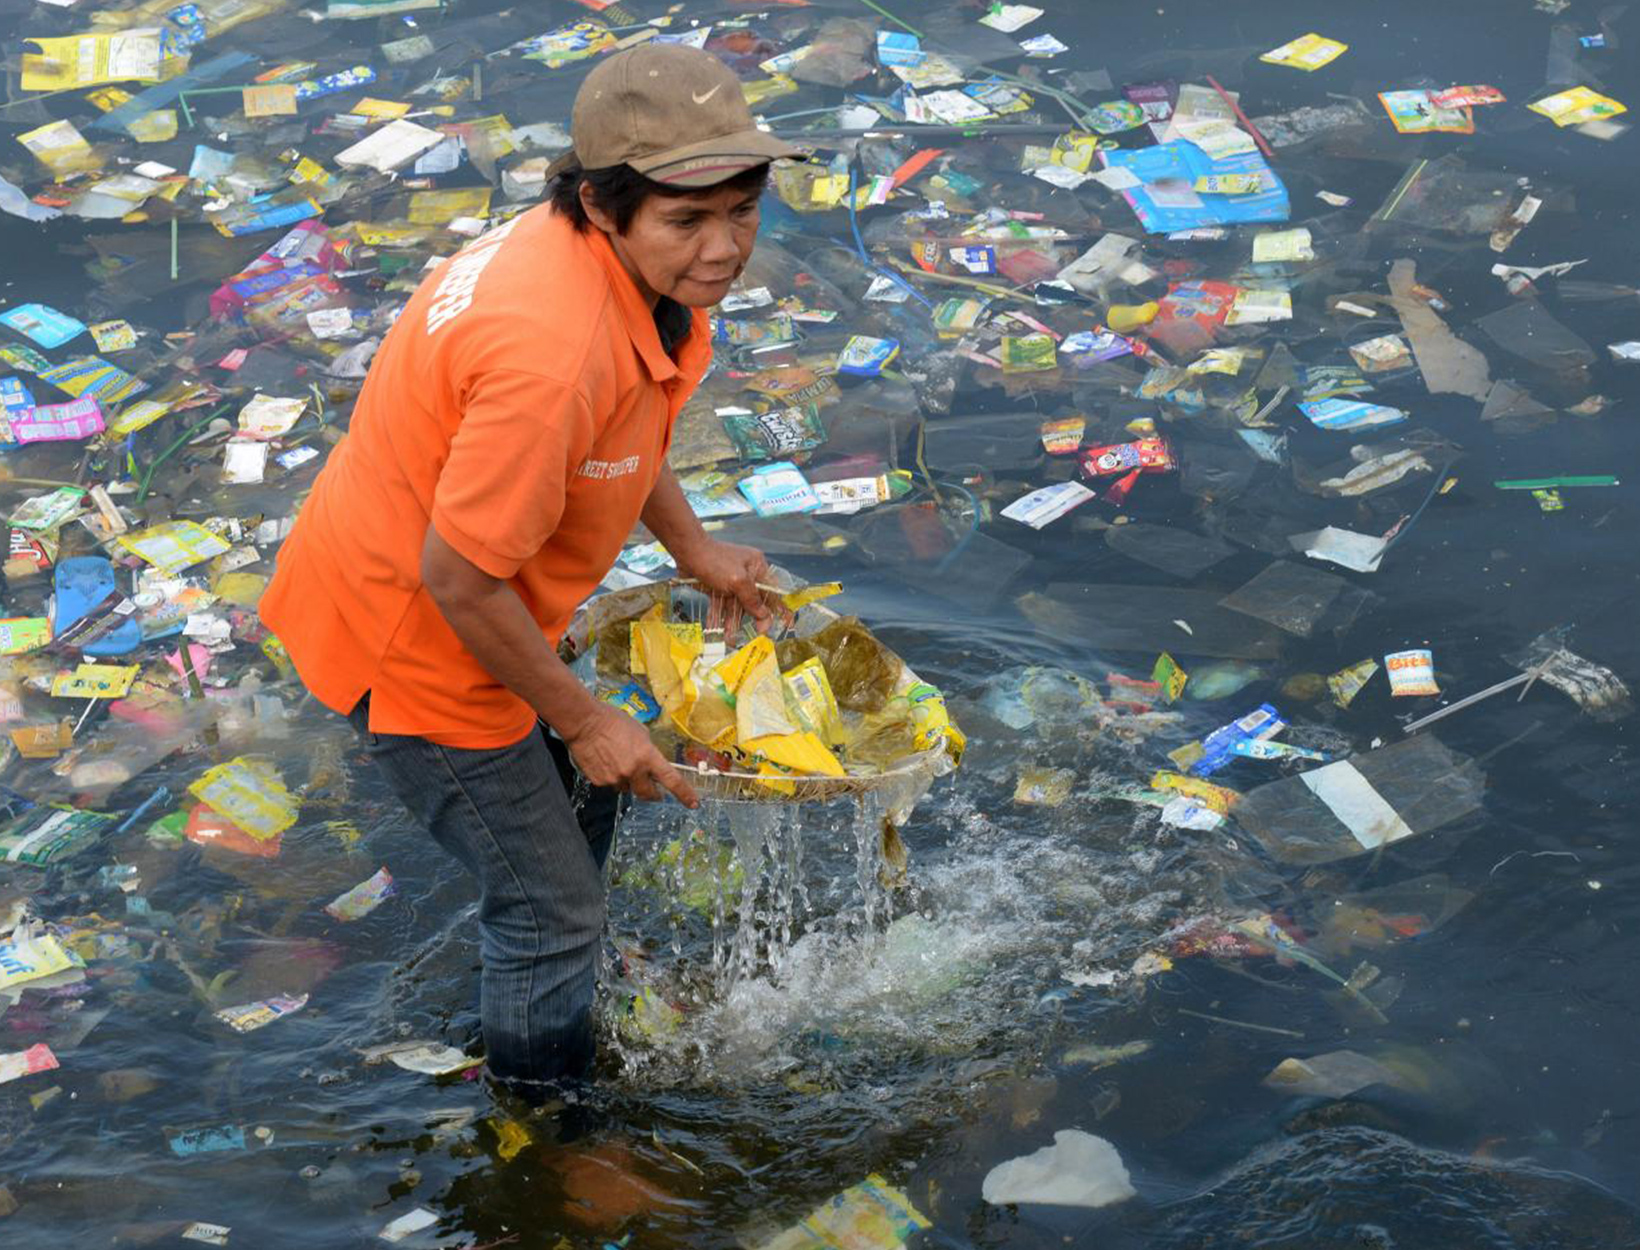 Ocean Pollution: Even Sea Creatures in the Deepest, Darkest Trenches Are Full of Plastic